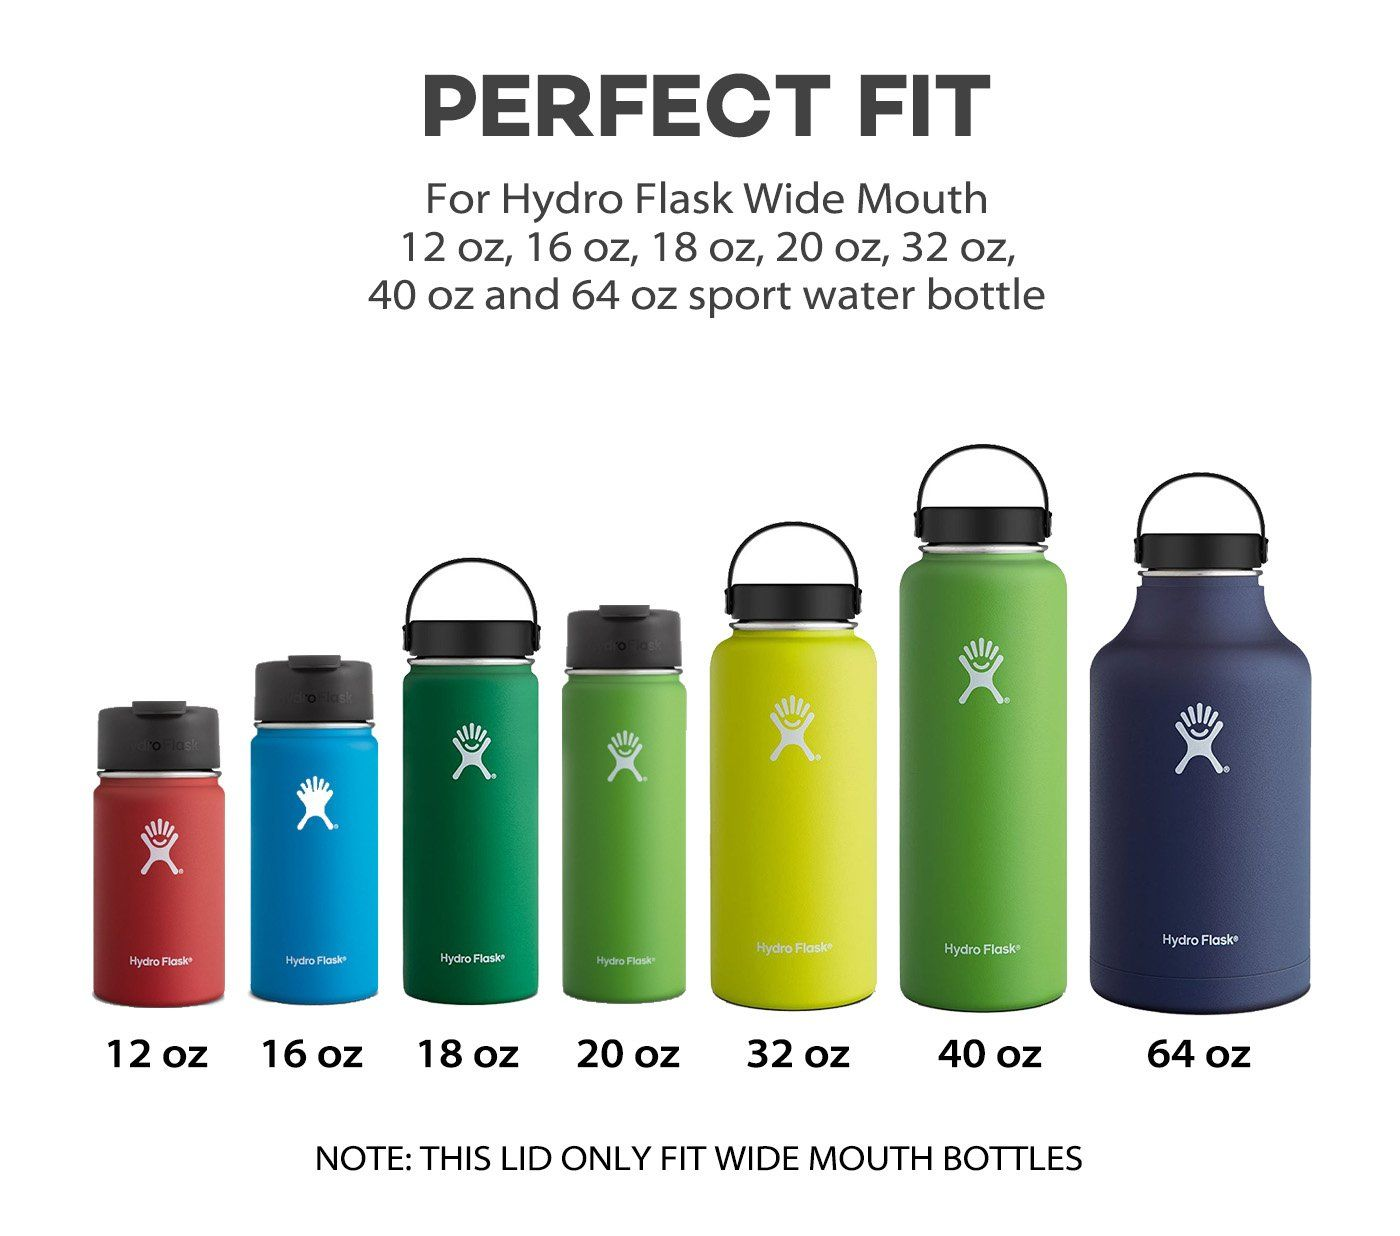 Vanteen Straw Lid With Handle For Hydro Flask Wide Mouth Sports Water Bottle Black Read More At The Image Link It Hydroflask Hydro Flask Water Bottle Flask